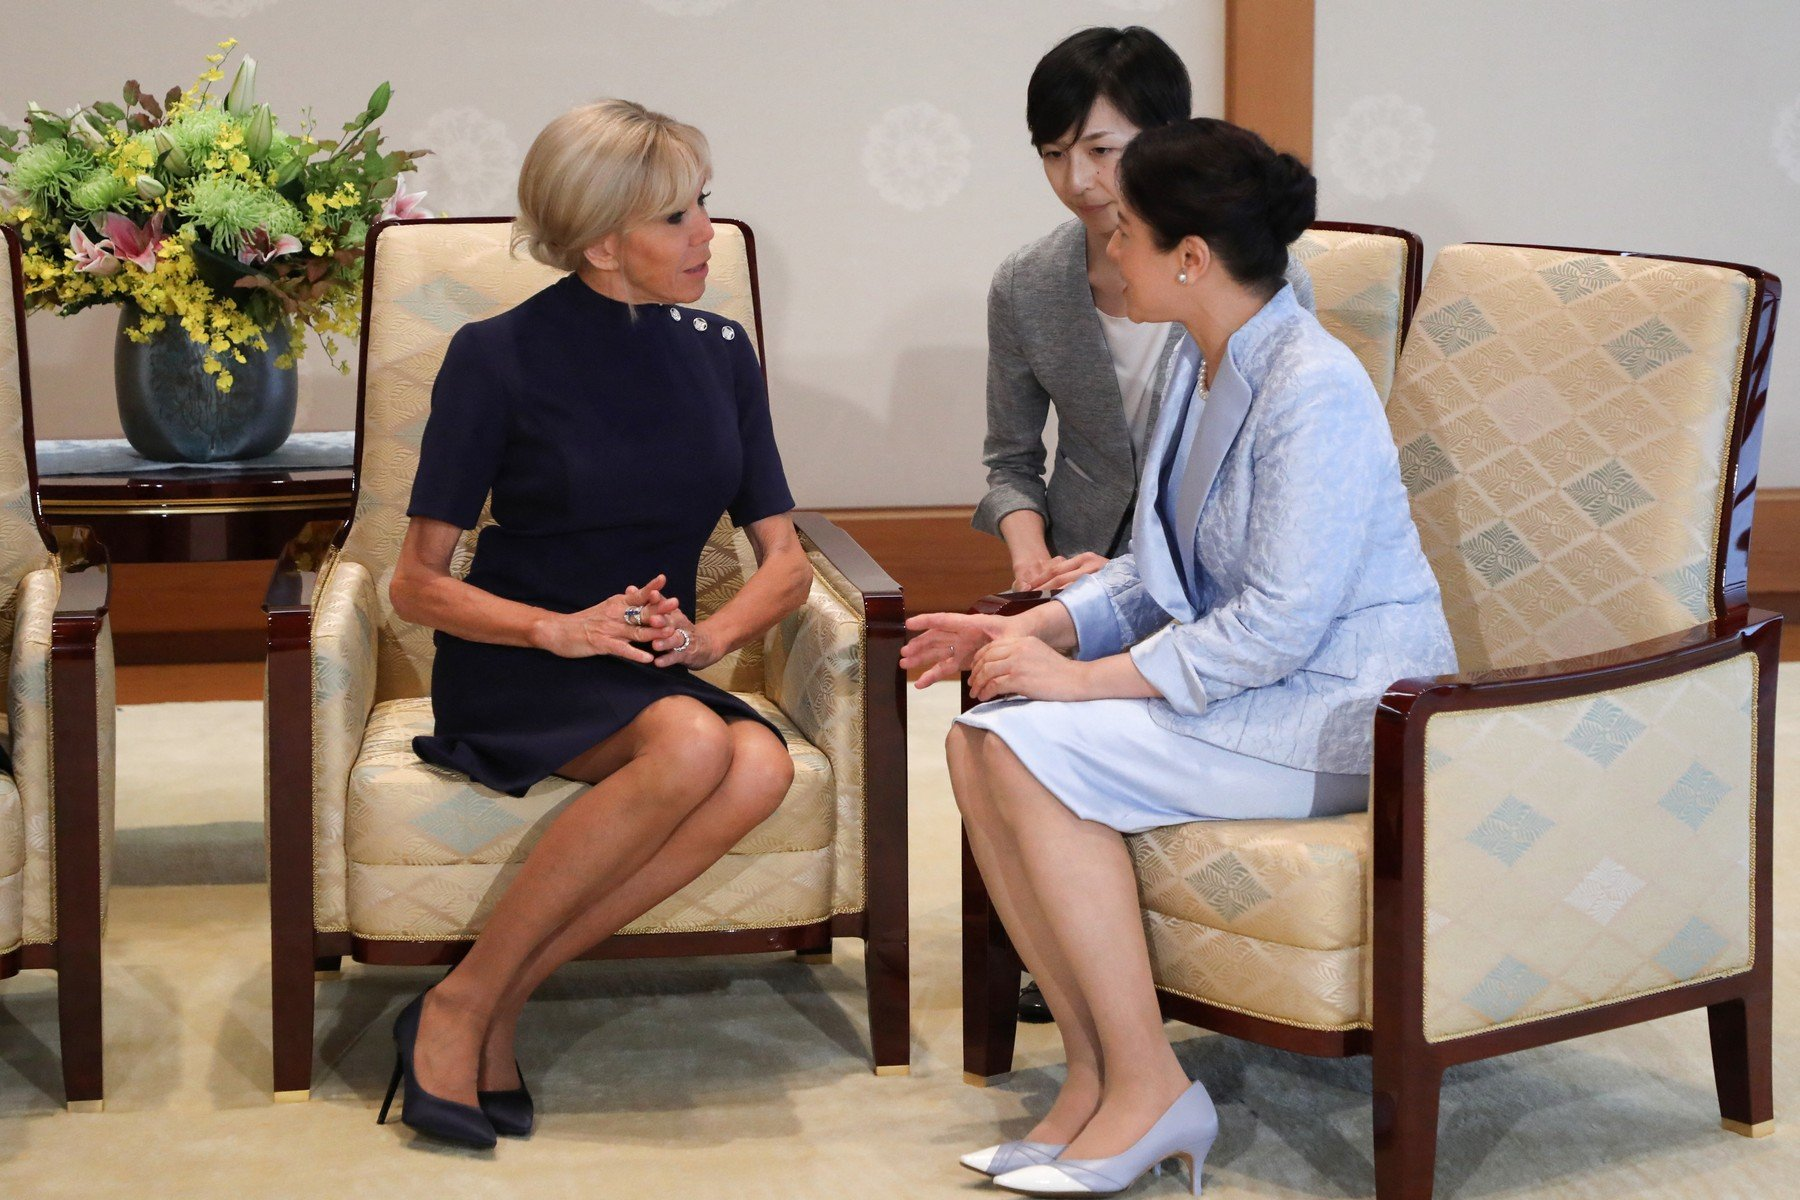 Brigitte Macron (L), the wife of France's President Emmanuel Macron, attends a meeting with Japan's Empress Masako (R), the wife of Emperor Naruhito, at the Imperial Palace in Tokyo on June 27, 2019. (, Image: 451835739, License: Rights-managed, Restrictions: , Model Release: no, Credit line: Profimedia, Abaca Press